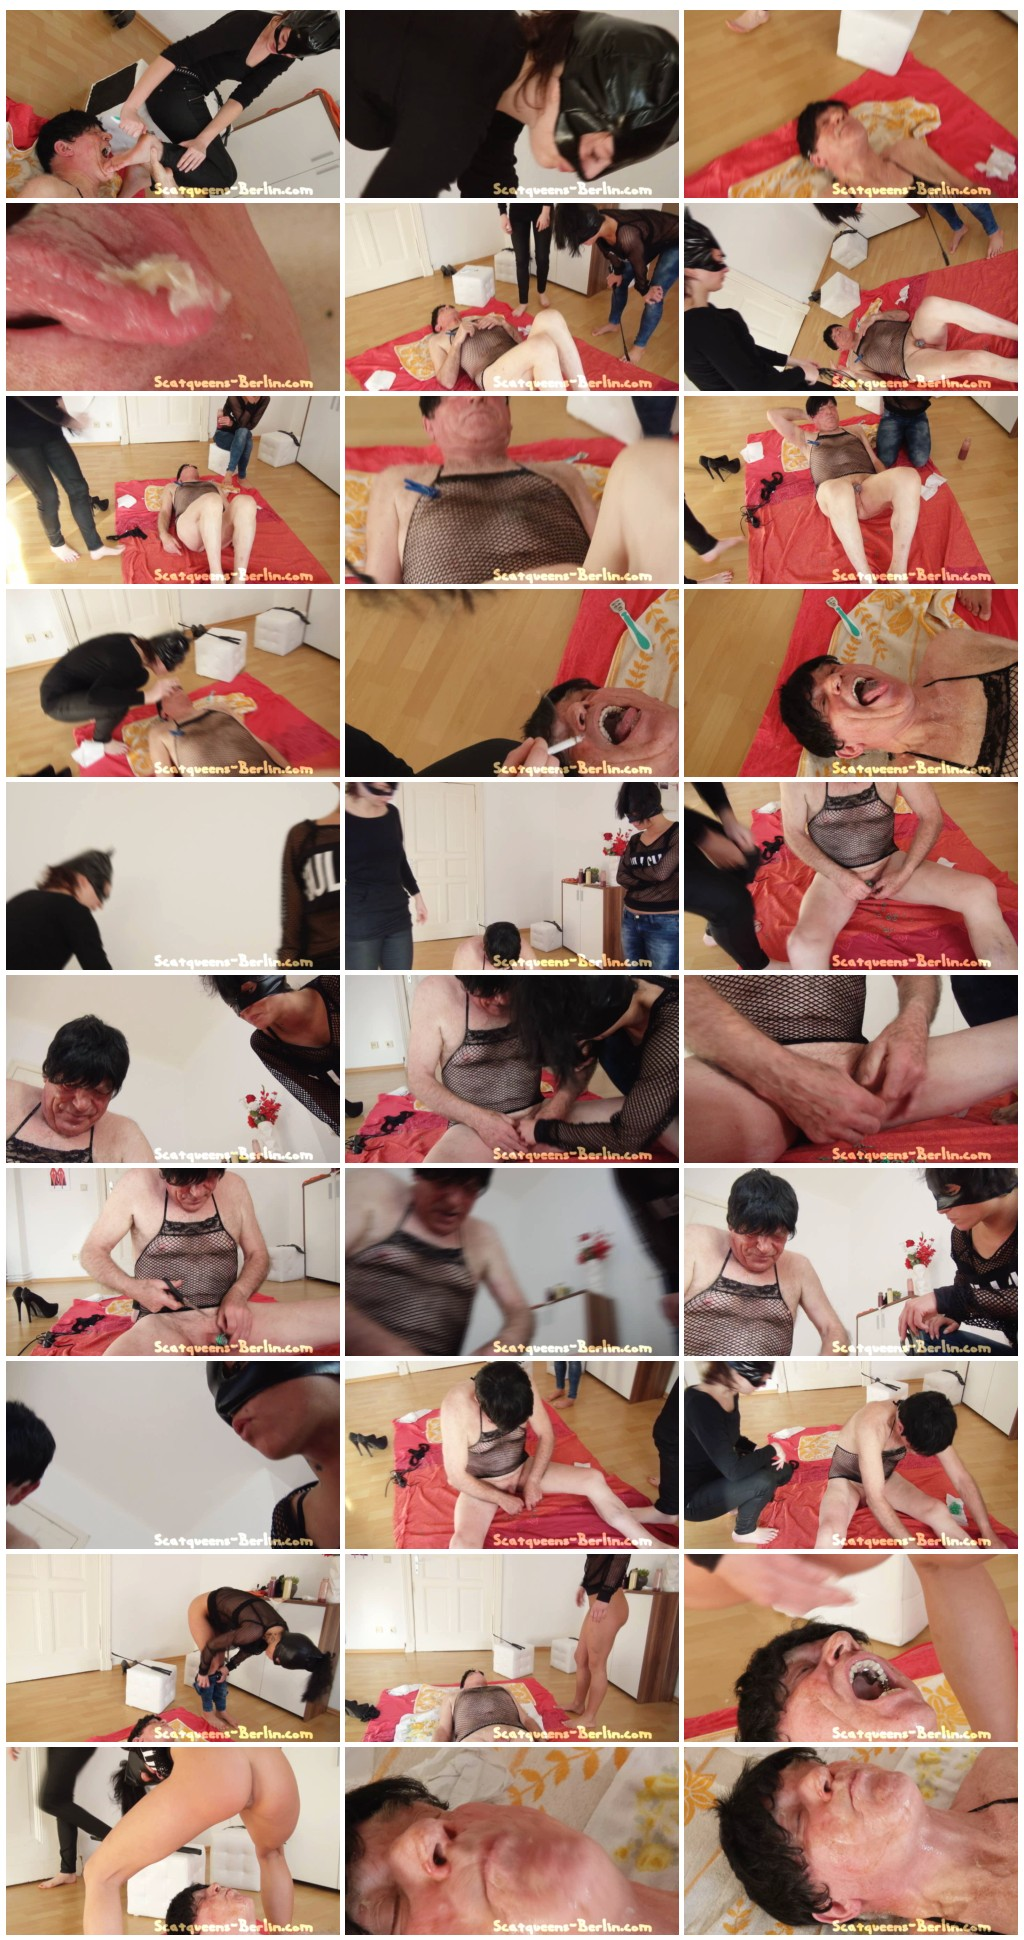 [Scatqueens-Berlin.com - Scat-Ladies.com] Scat Cats and the Scat Bitch P1 [Scat, Piss, Vomit, Spitting, Facesitting, Whipping, Trampling, Femdom, Humiliation, Toilet Slavery]